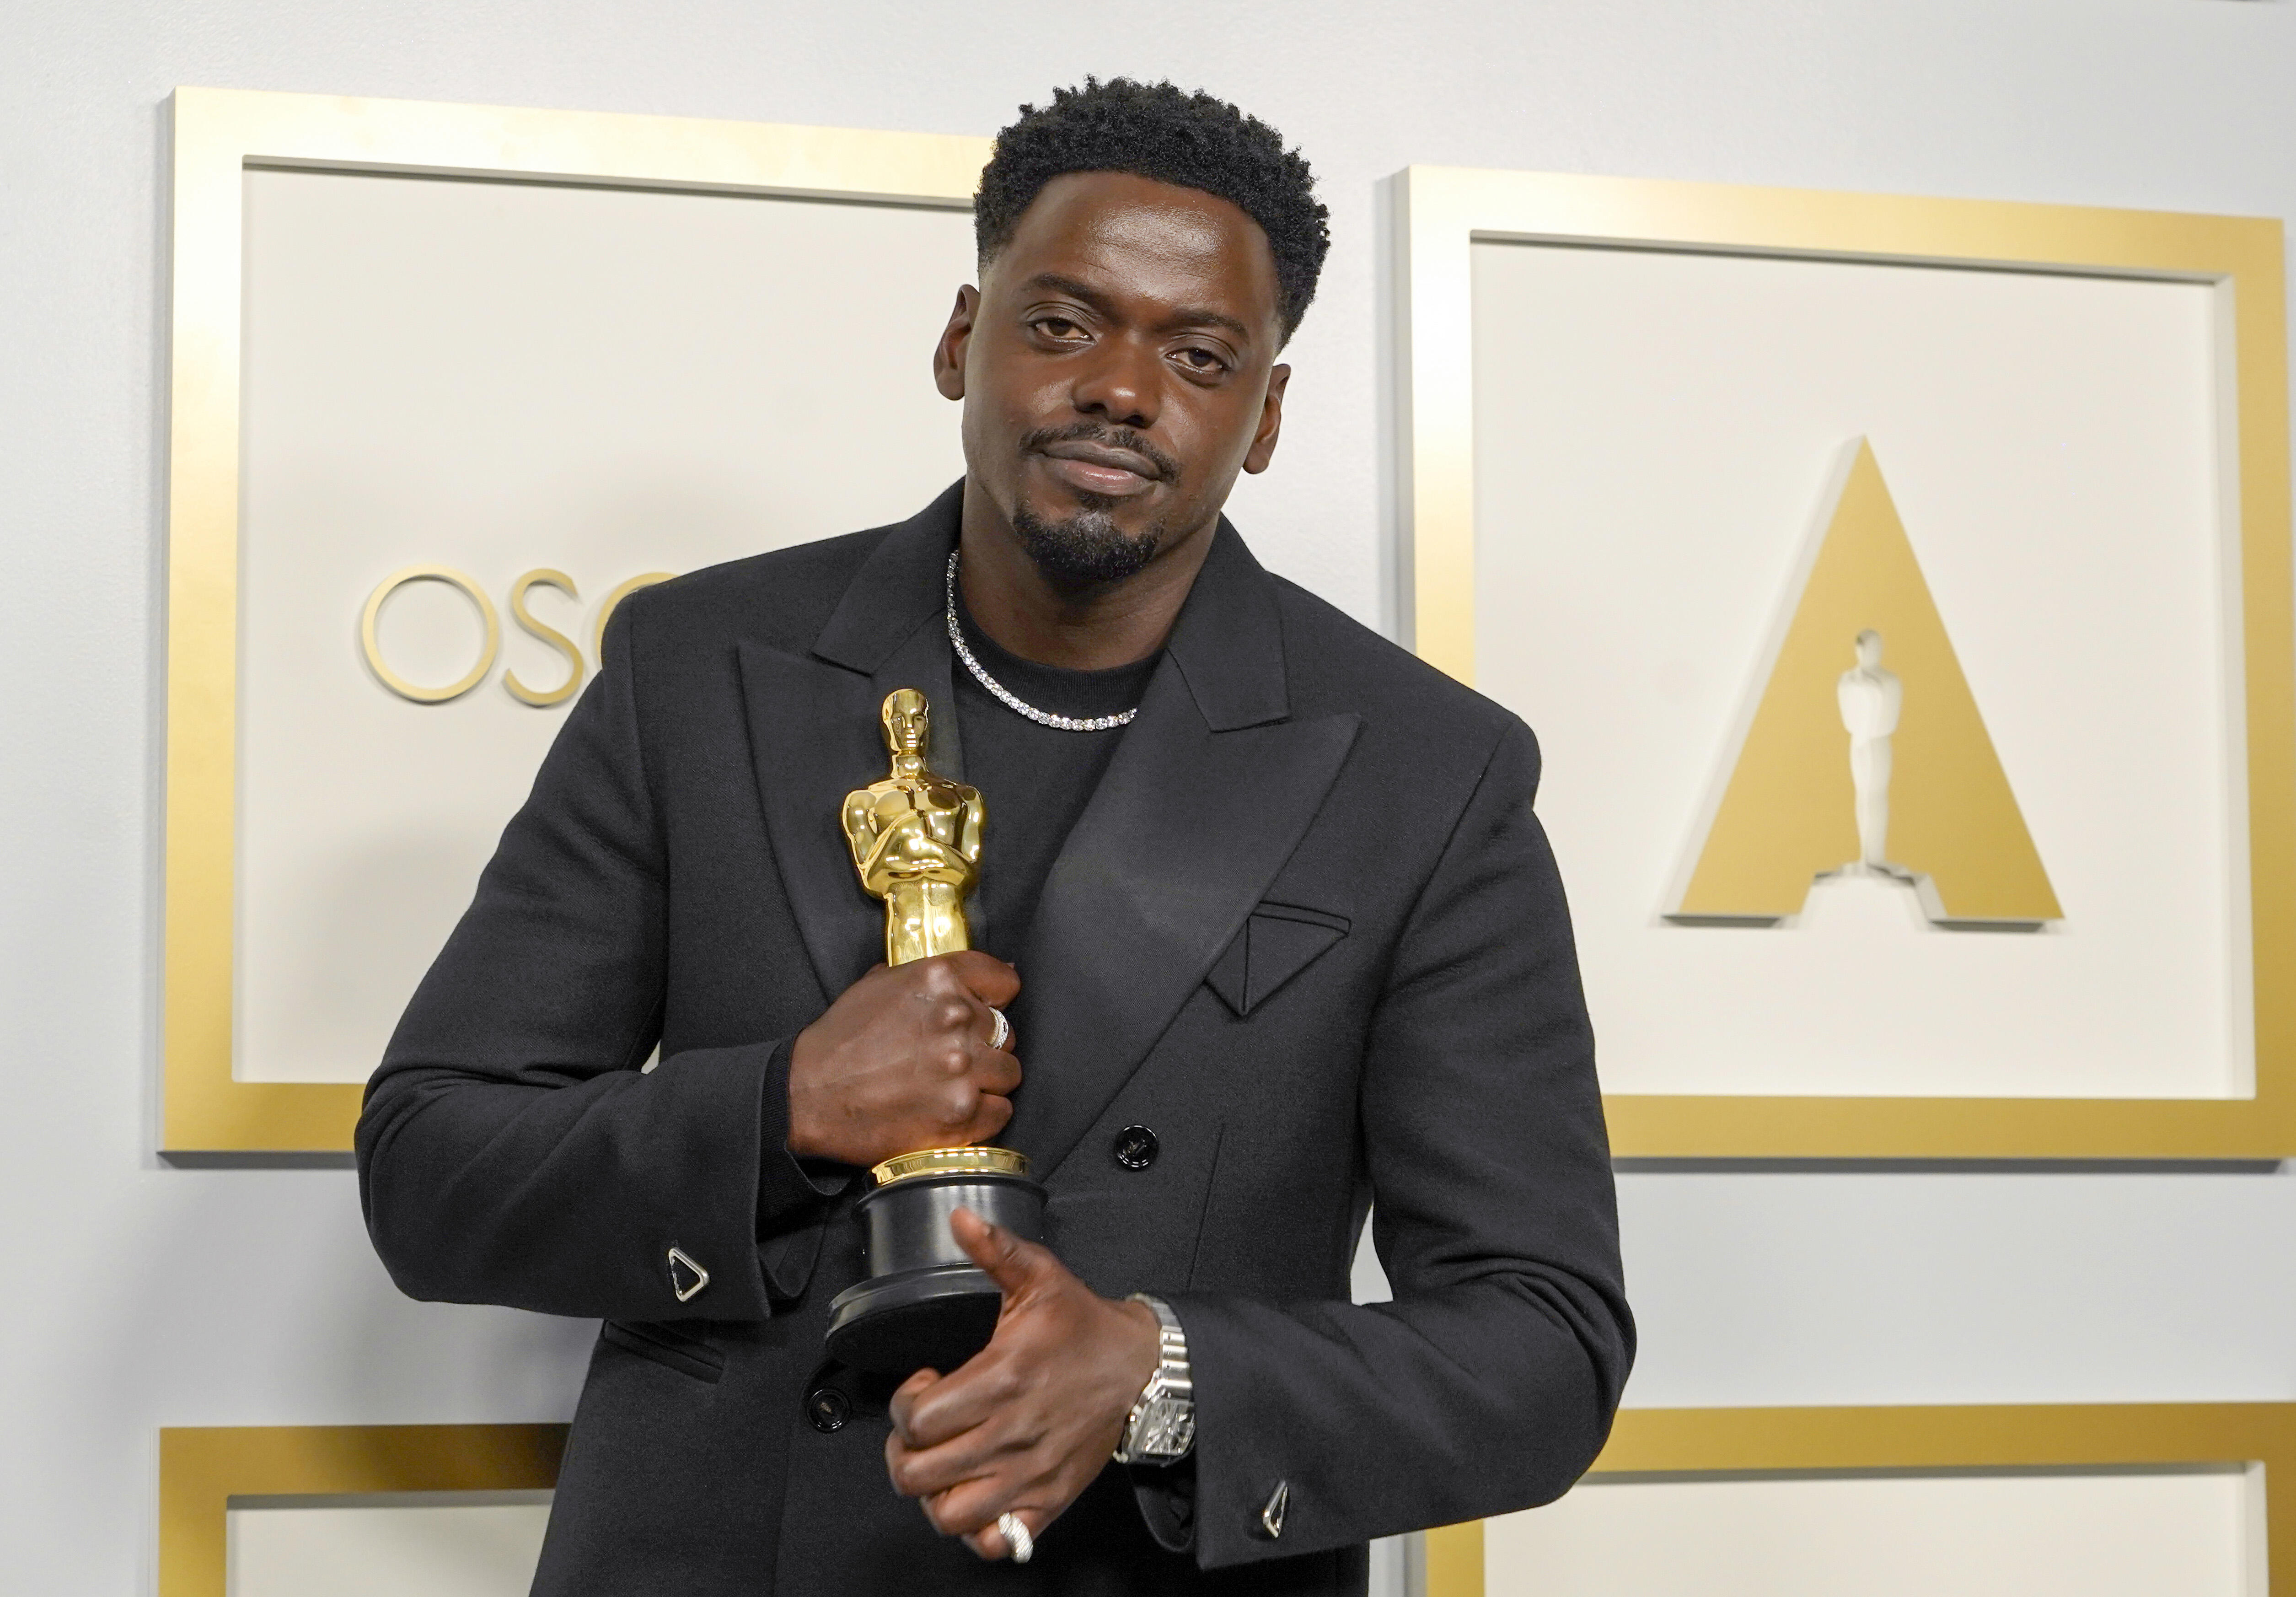 Oscars 2021 live results: All the winners, from Chloé Zhao to Daniel Kaluuya  - CNET